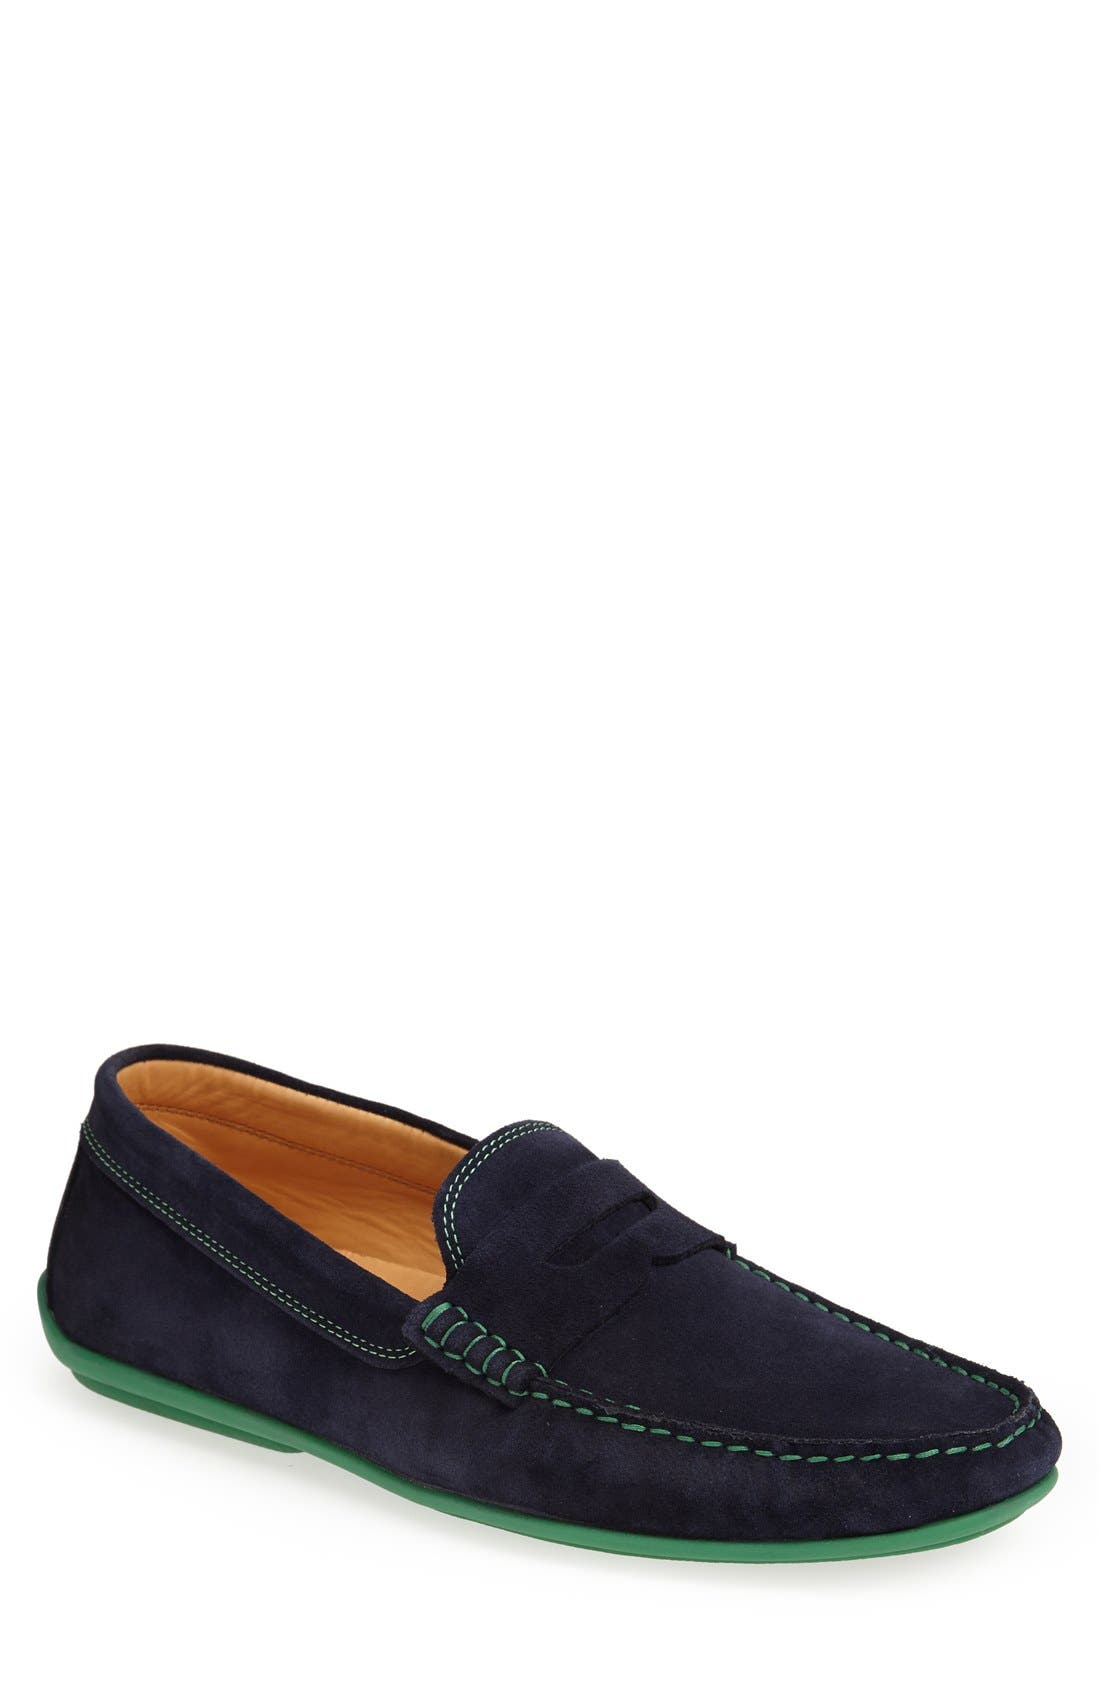 'Chathams' Penny Loafer,                         Main,                         color, Navy Suede/ Green